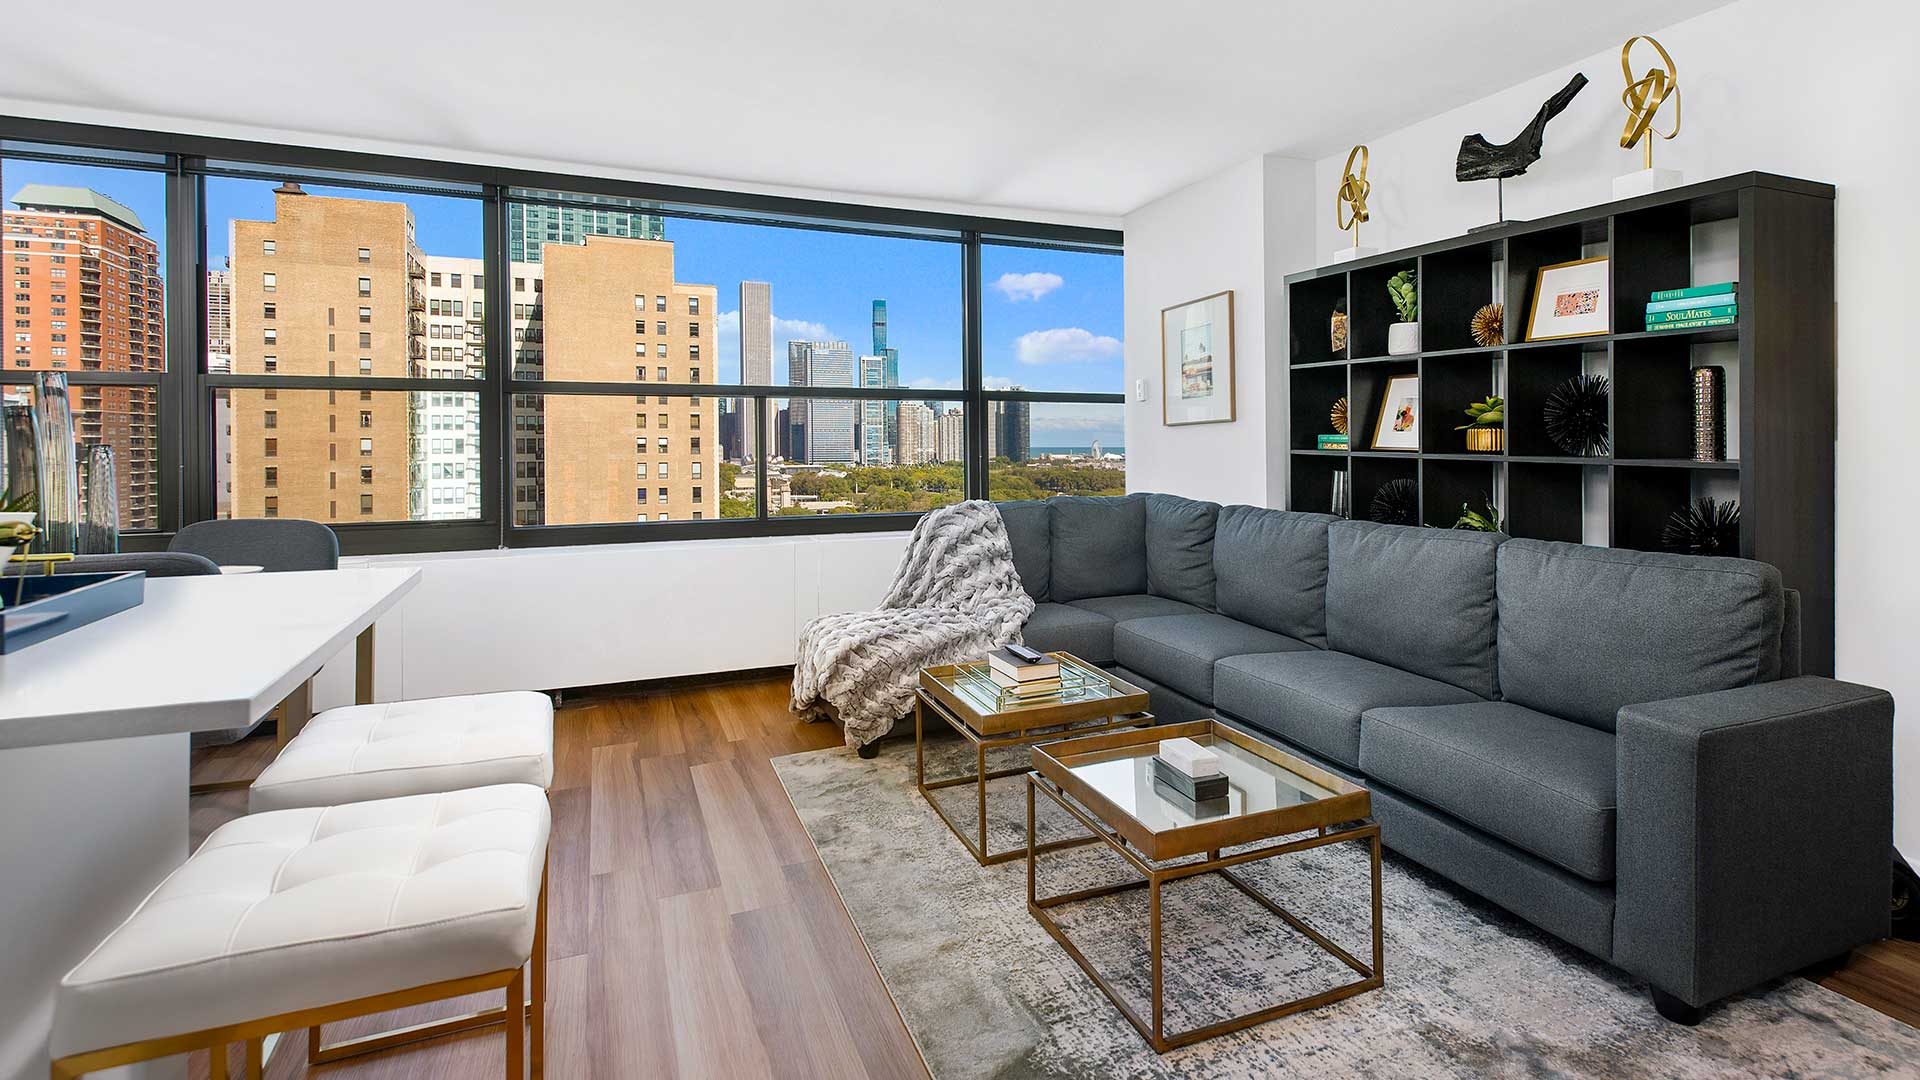 A living room in a residence at Eleven Thirty. A couch lines the right wall with a book shelf behind it. Chicago buildings, Grant Park and Lake Michigan can be seen out the windows.